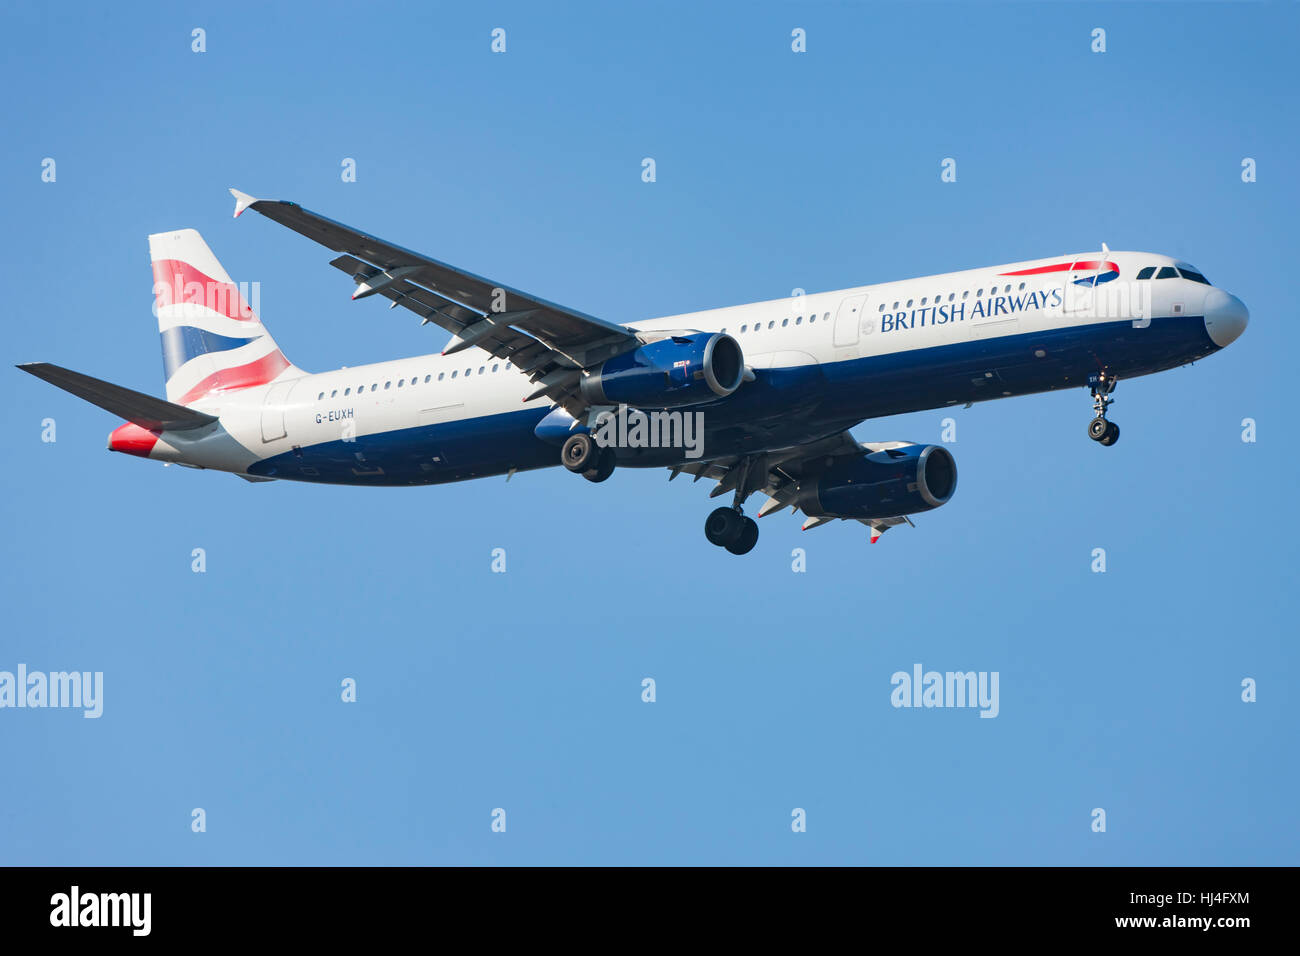 British Airways Airliner in flight, airplane, plane, blue sky - Stock Image